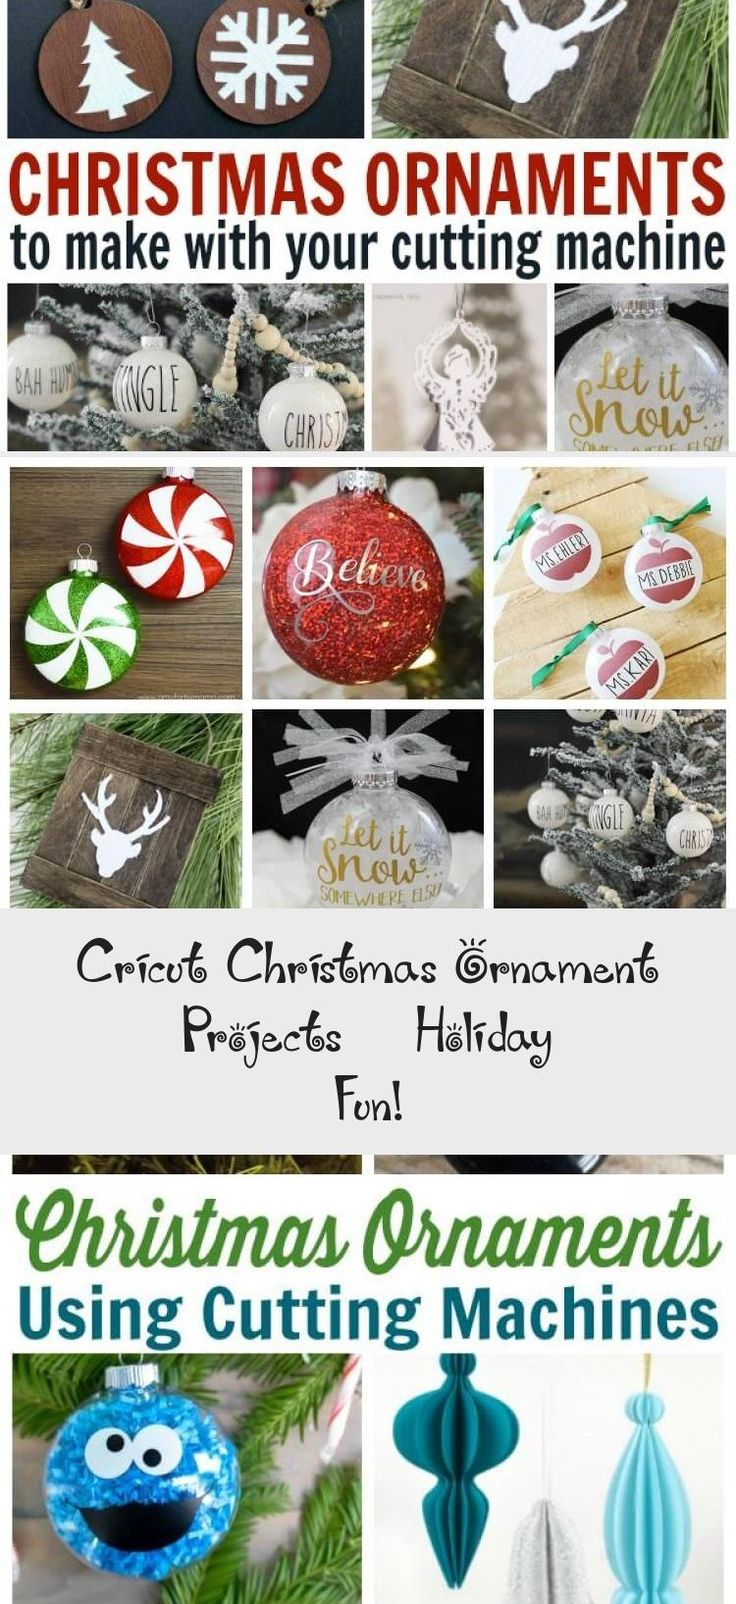 Cricut Christmas Ornament Projects Holiday Fun in 2020